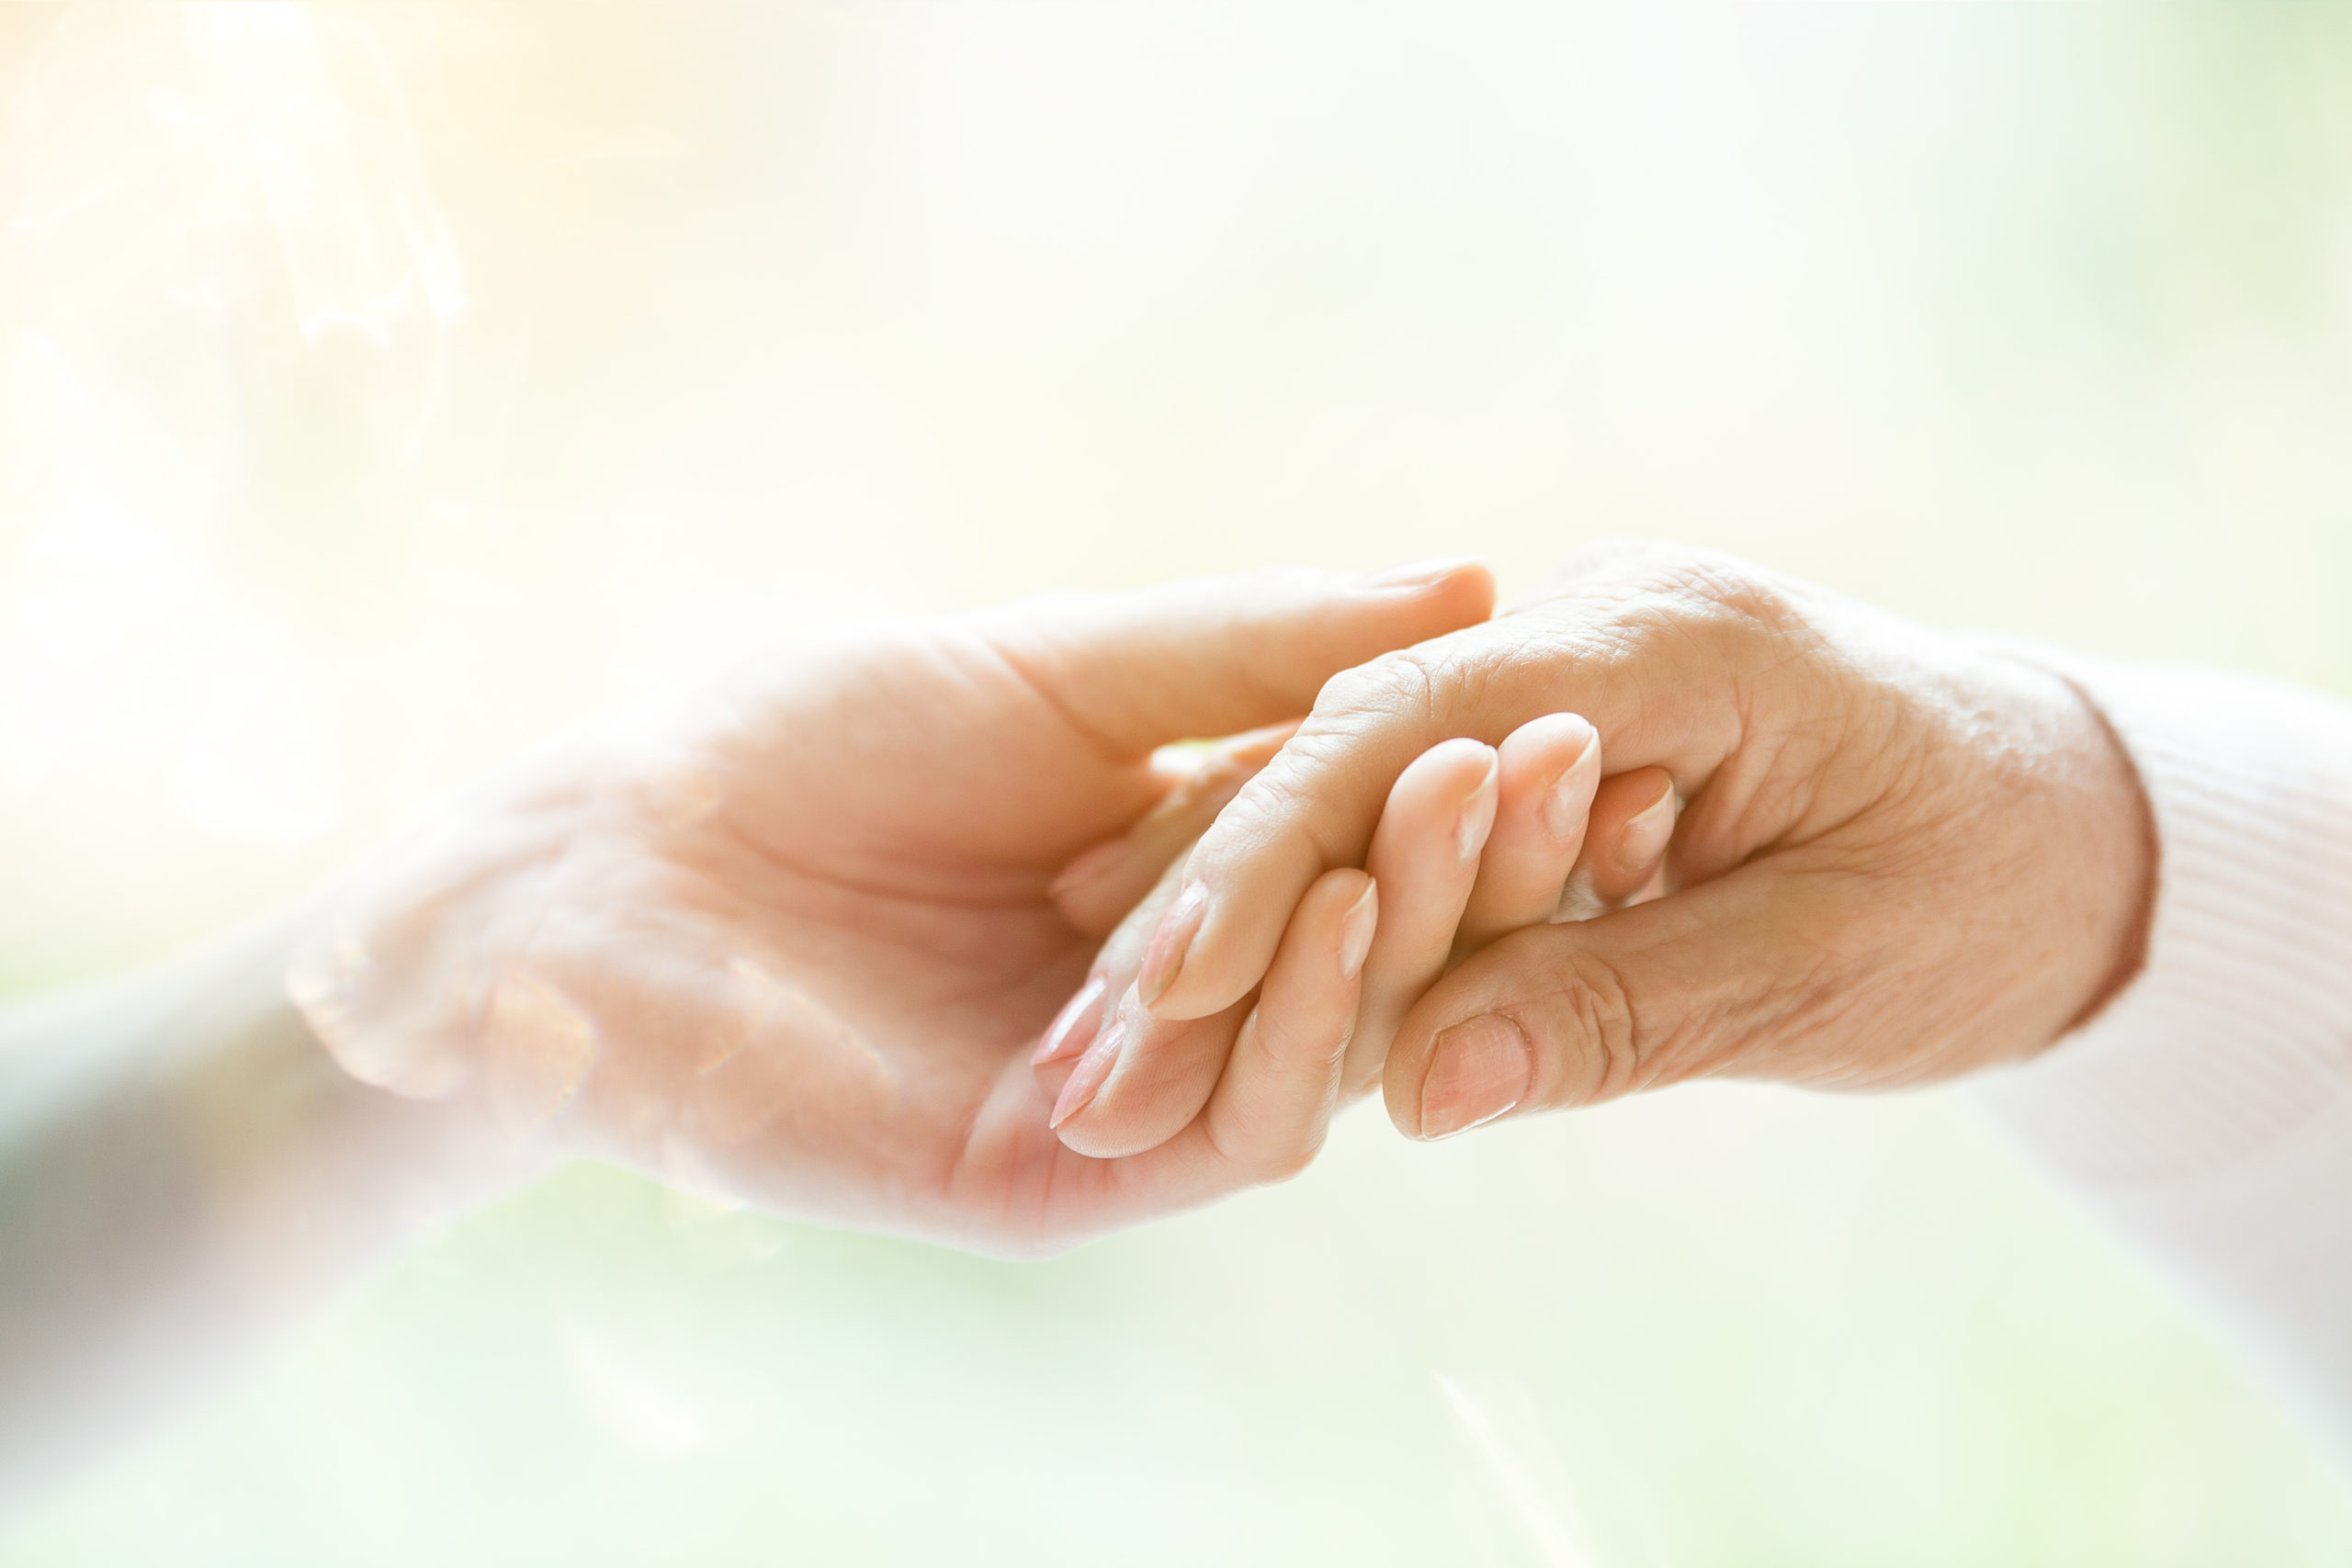 Care hands